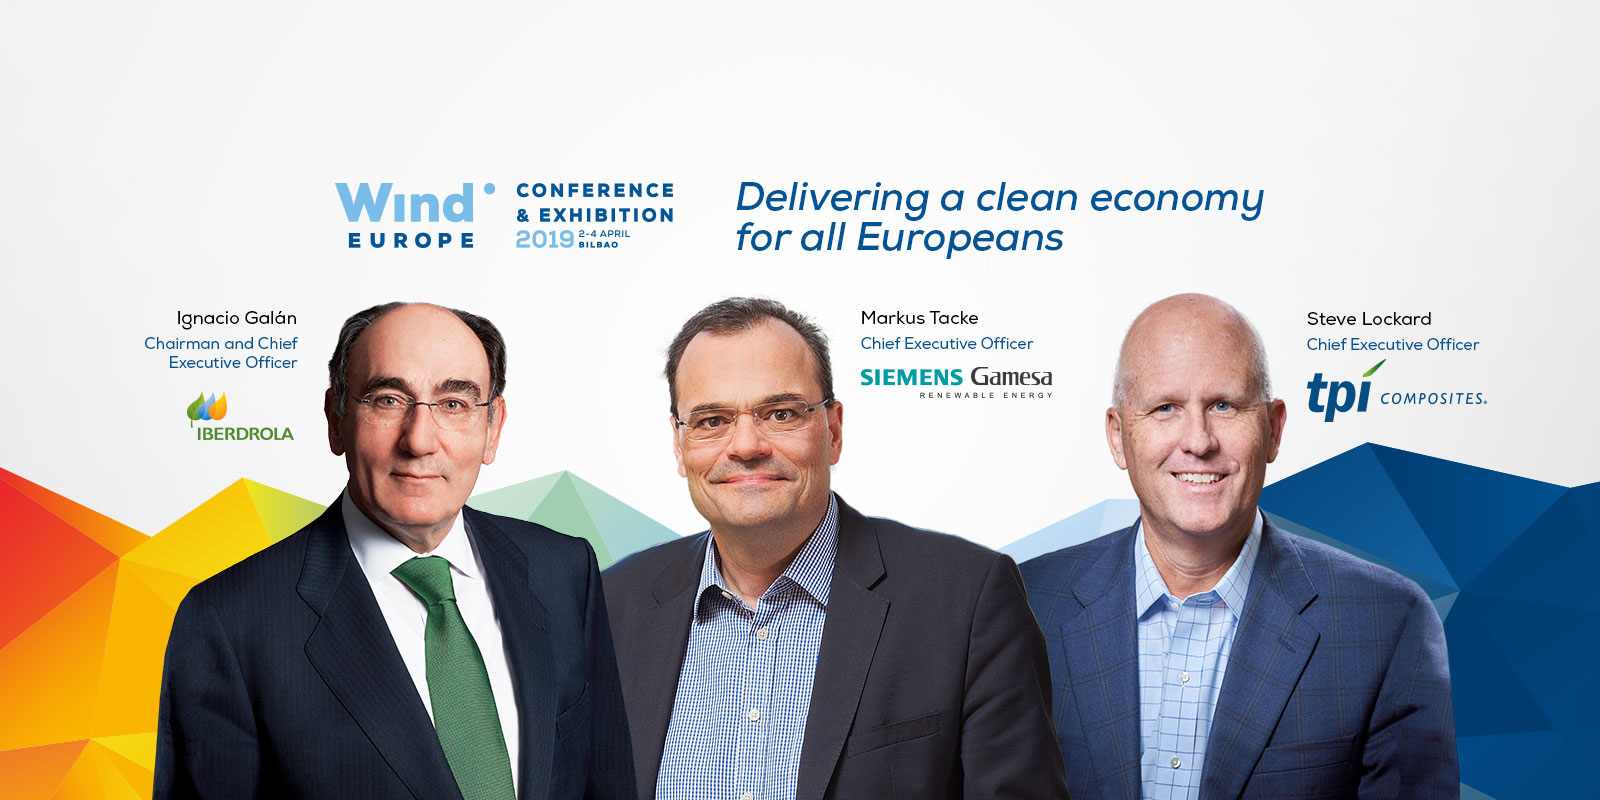 WindEurope 2019 conference and exhibition event ambassadors in Bilbao